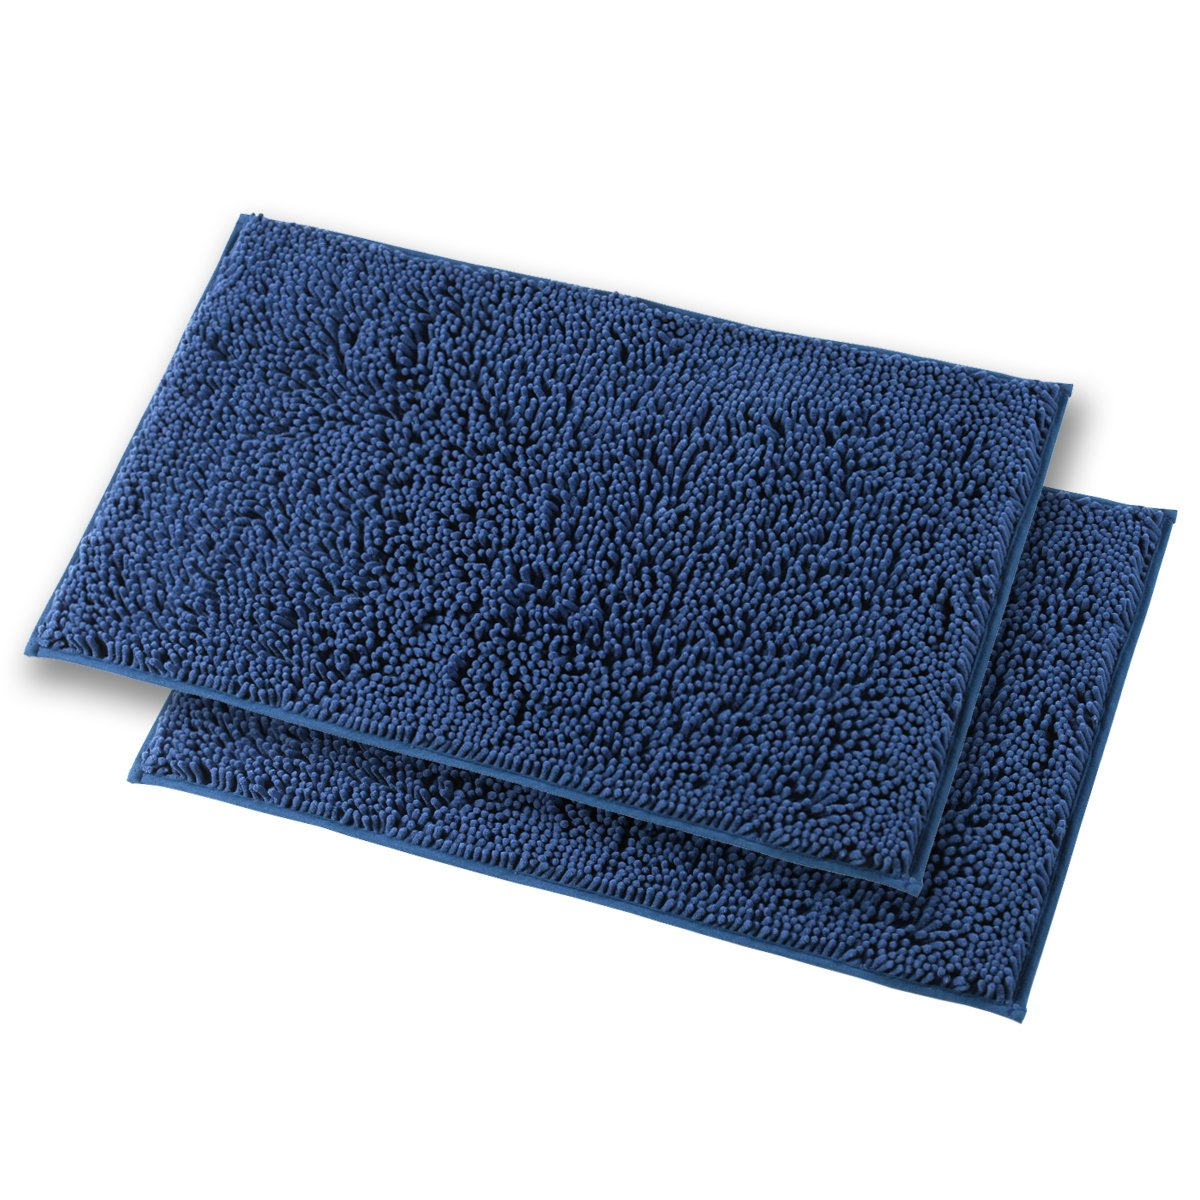 mayshine bath mats for bathroom rugs non slip machine. Black Bedroom Furniture Sets. Home Design Ideas